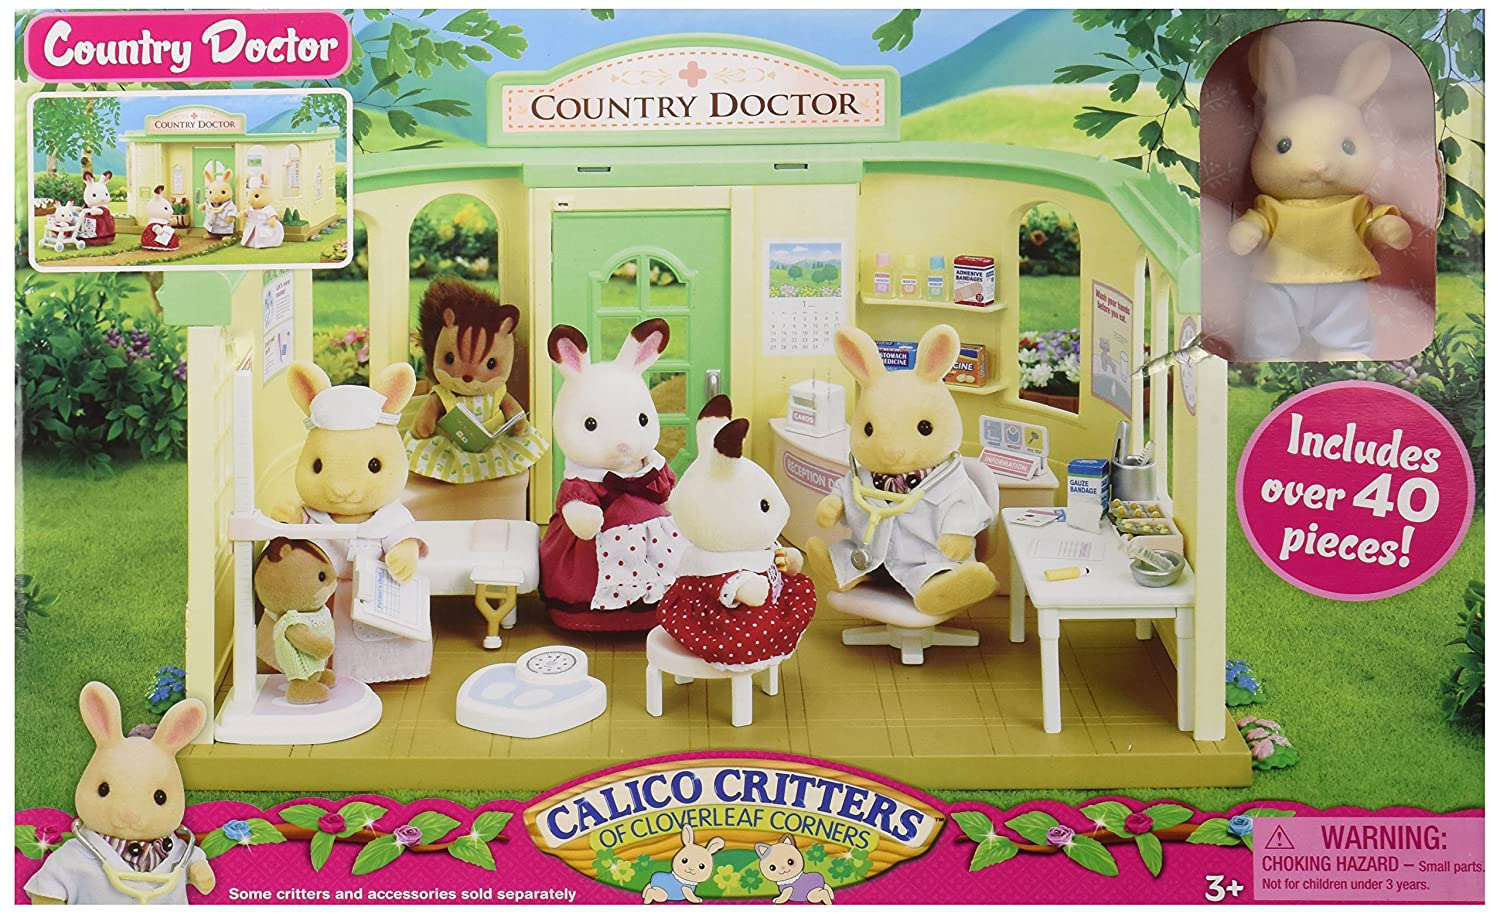 Calico Critters Country Doctor Playset